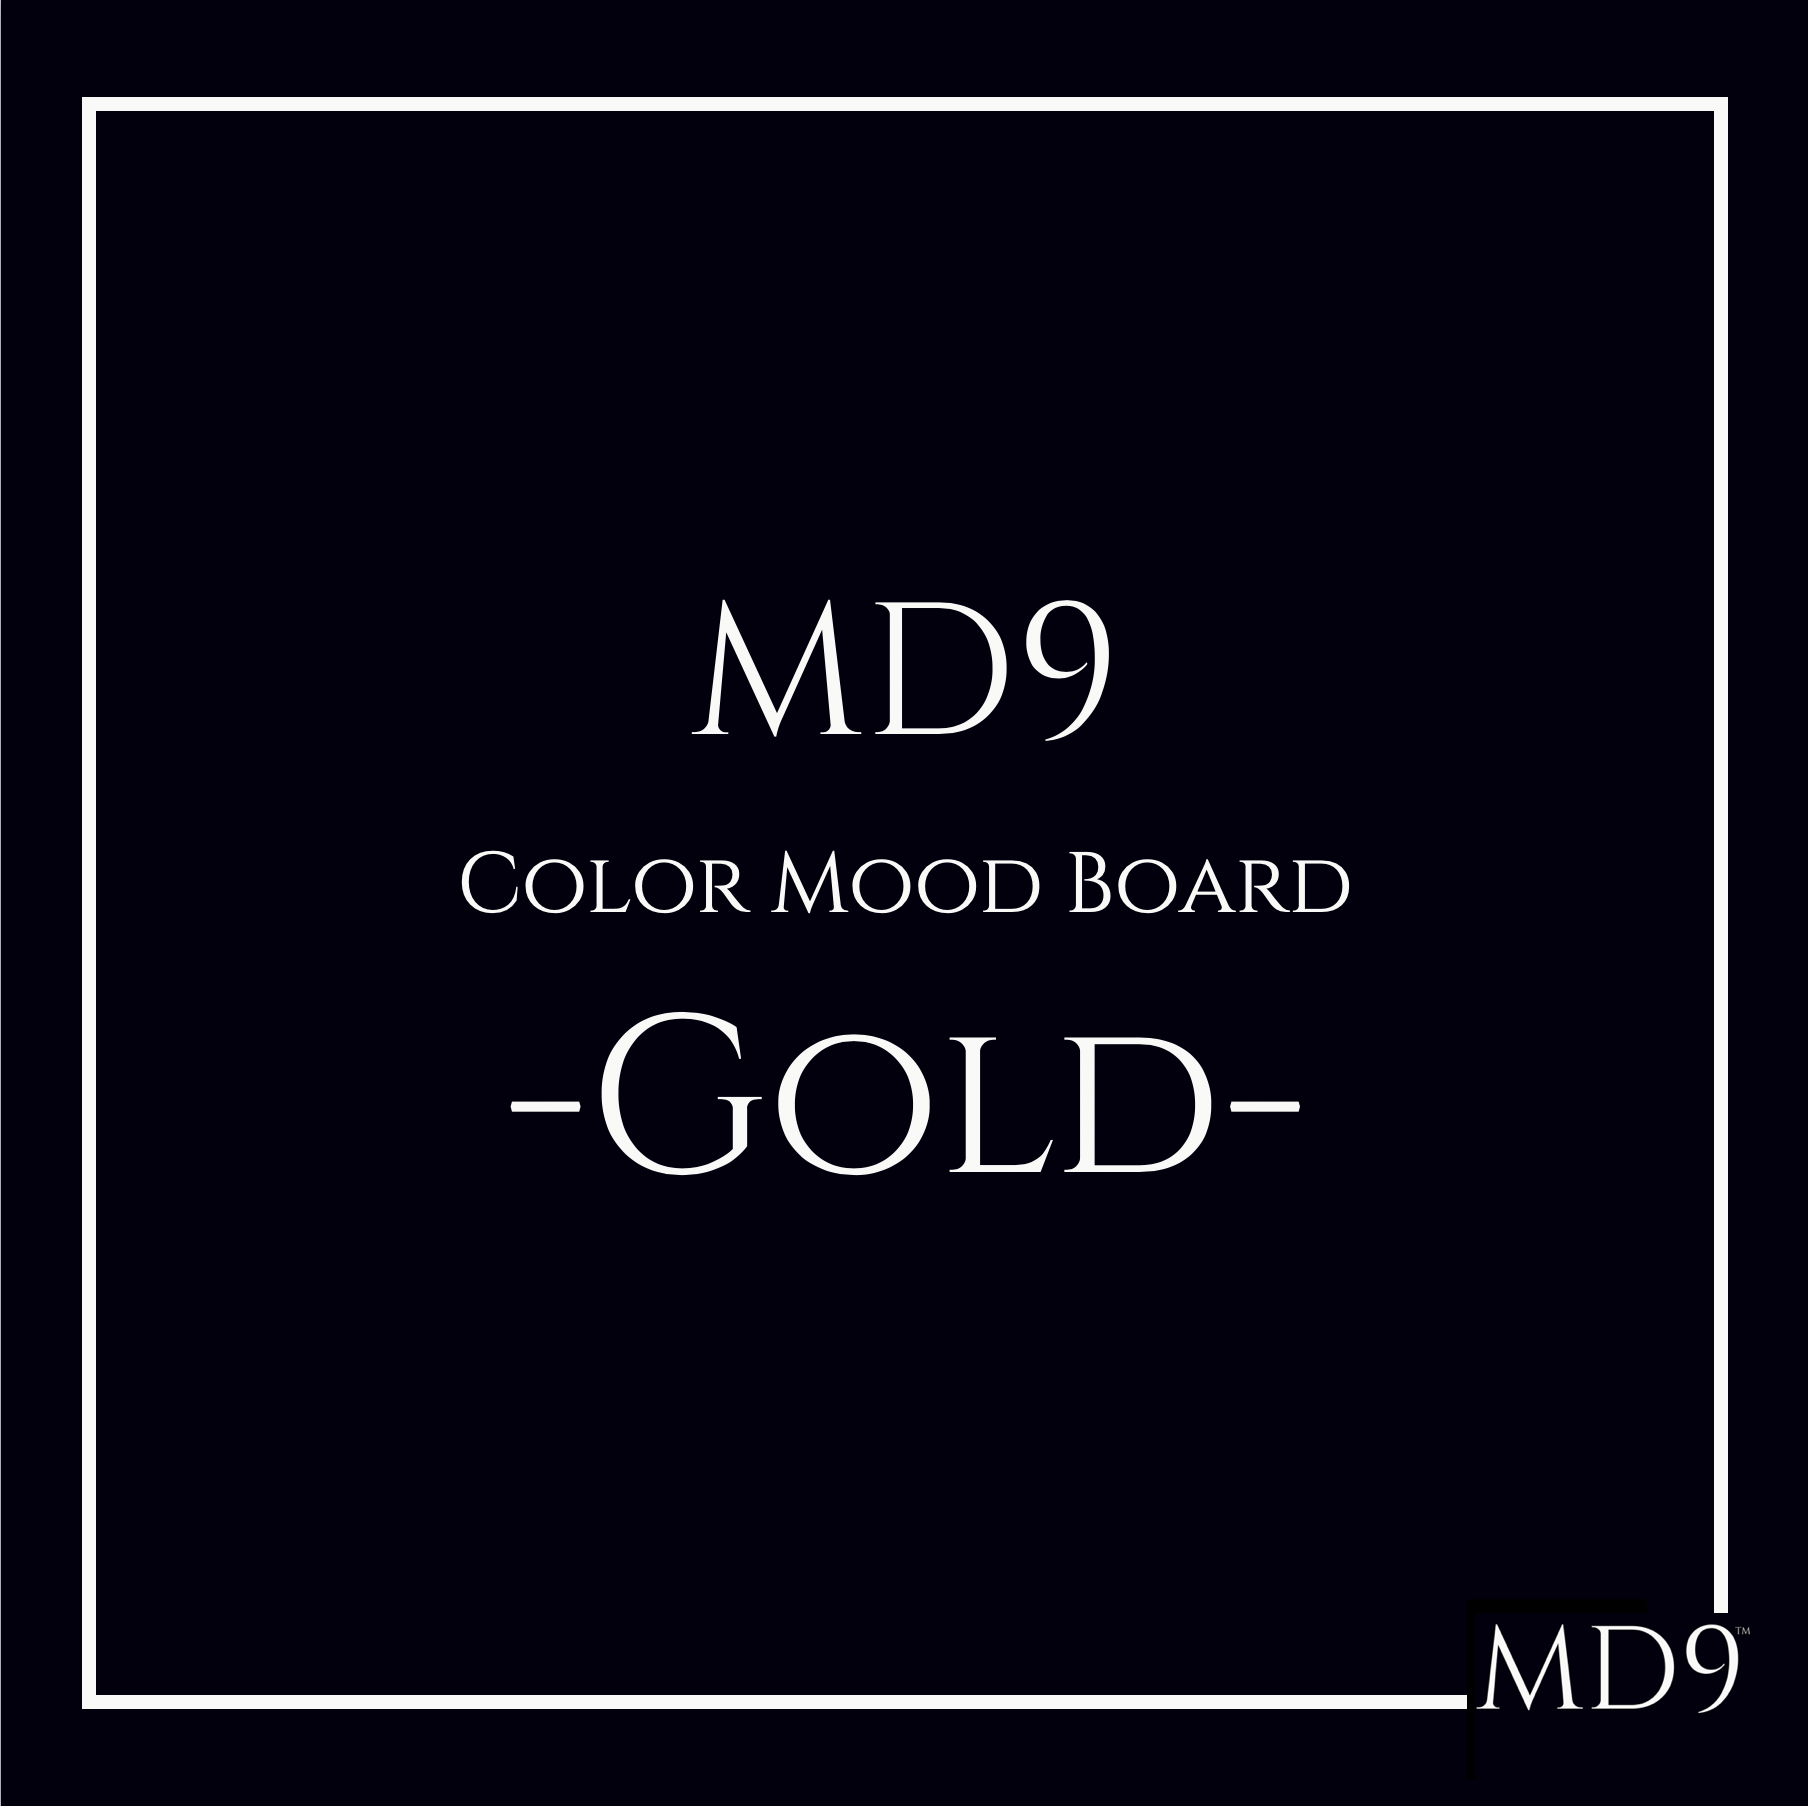 MD9's Colors Mood Board – Gold